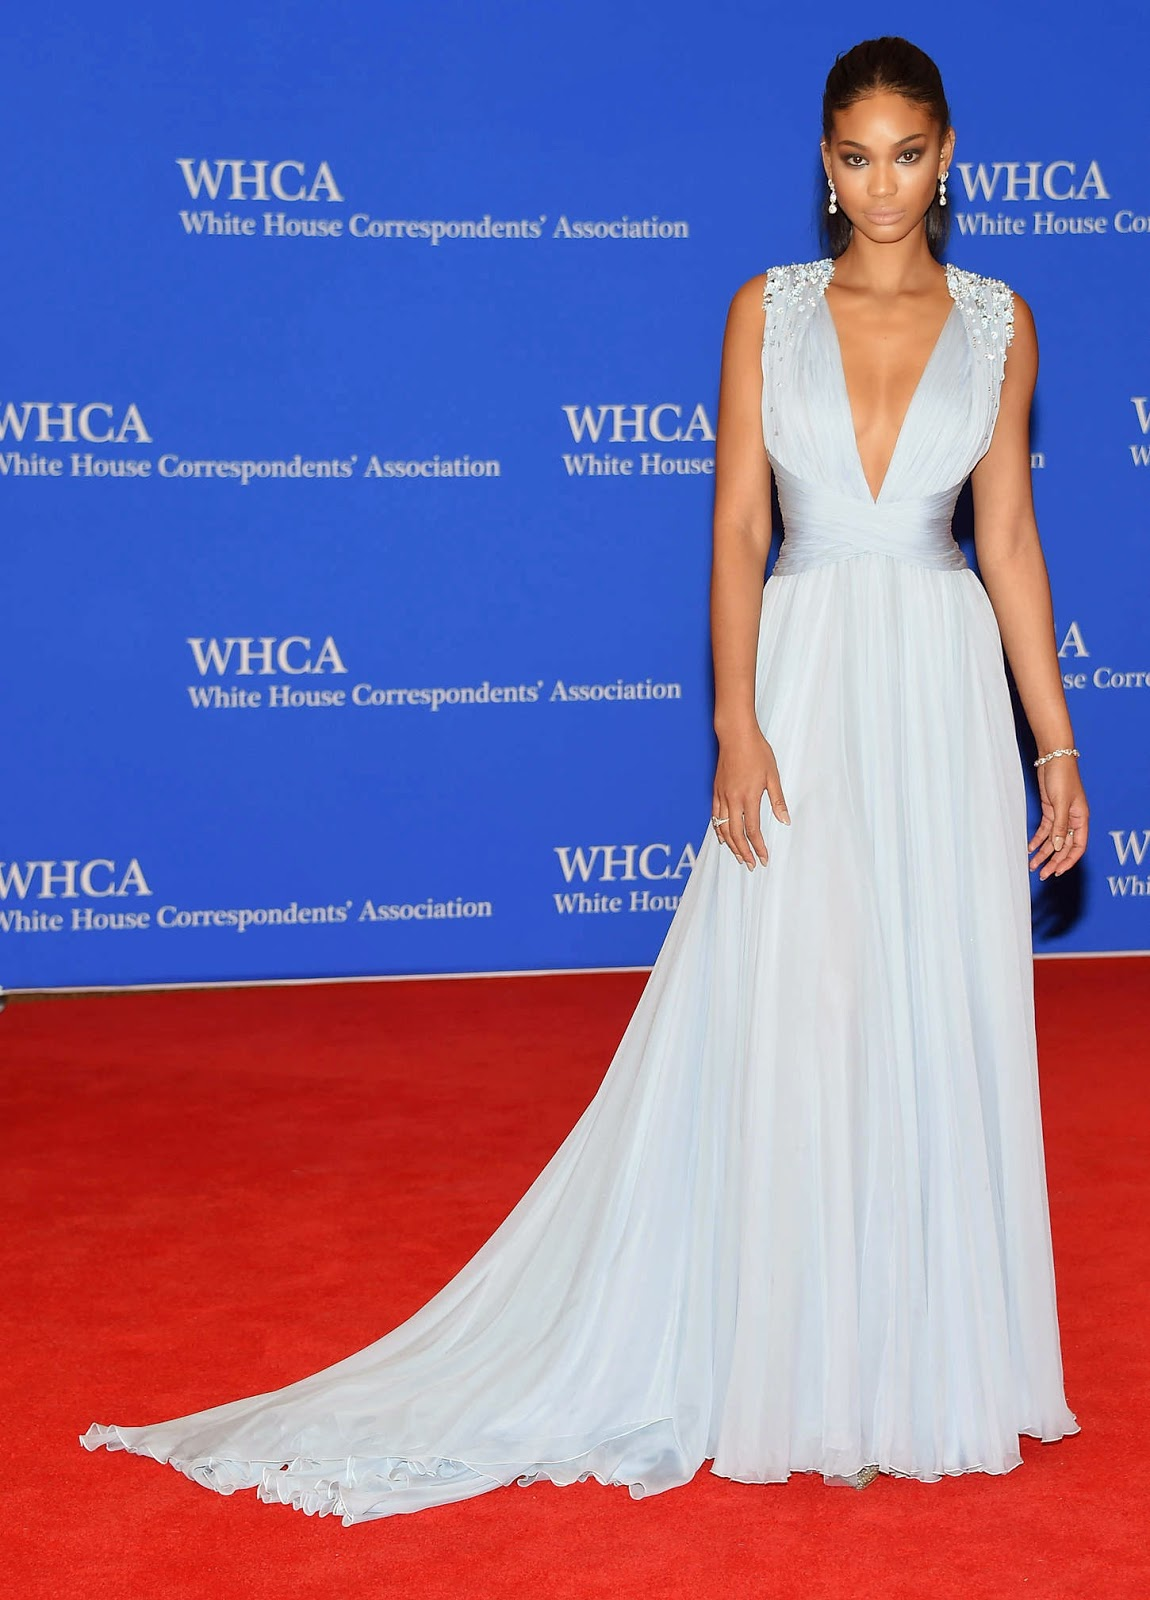 Chanel Iman – 101st Annual White House Correspondents' Association Dinner in Washington